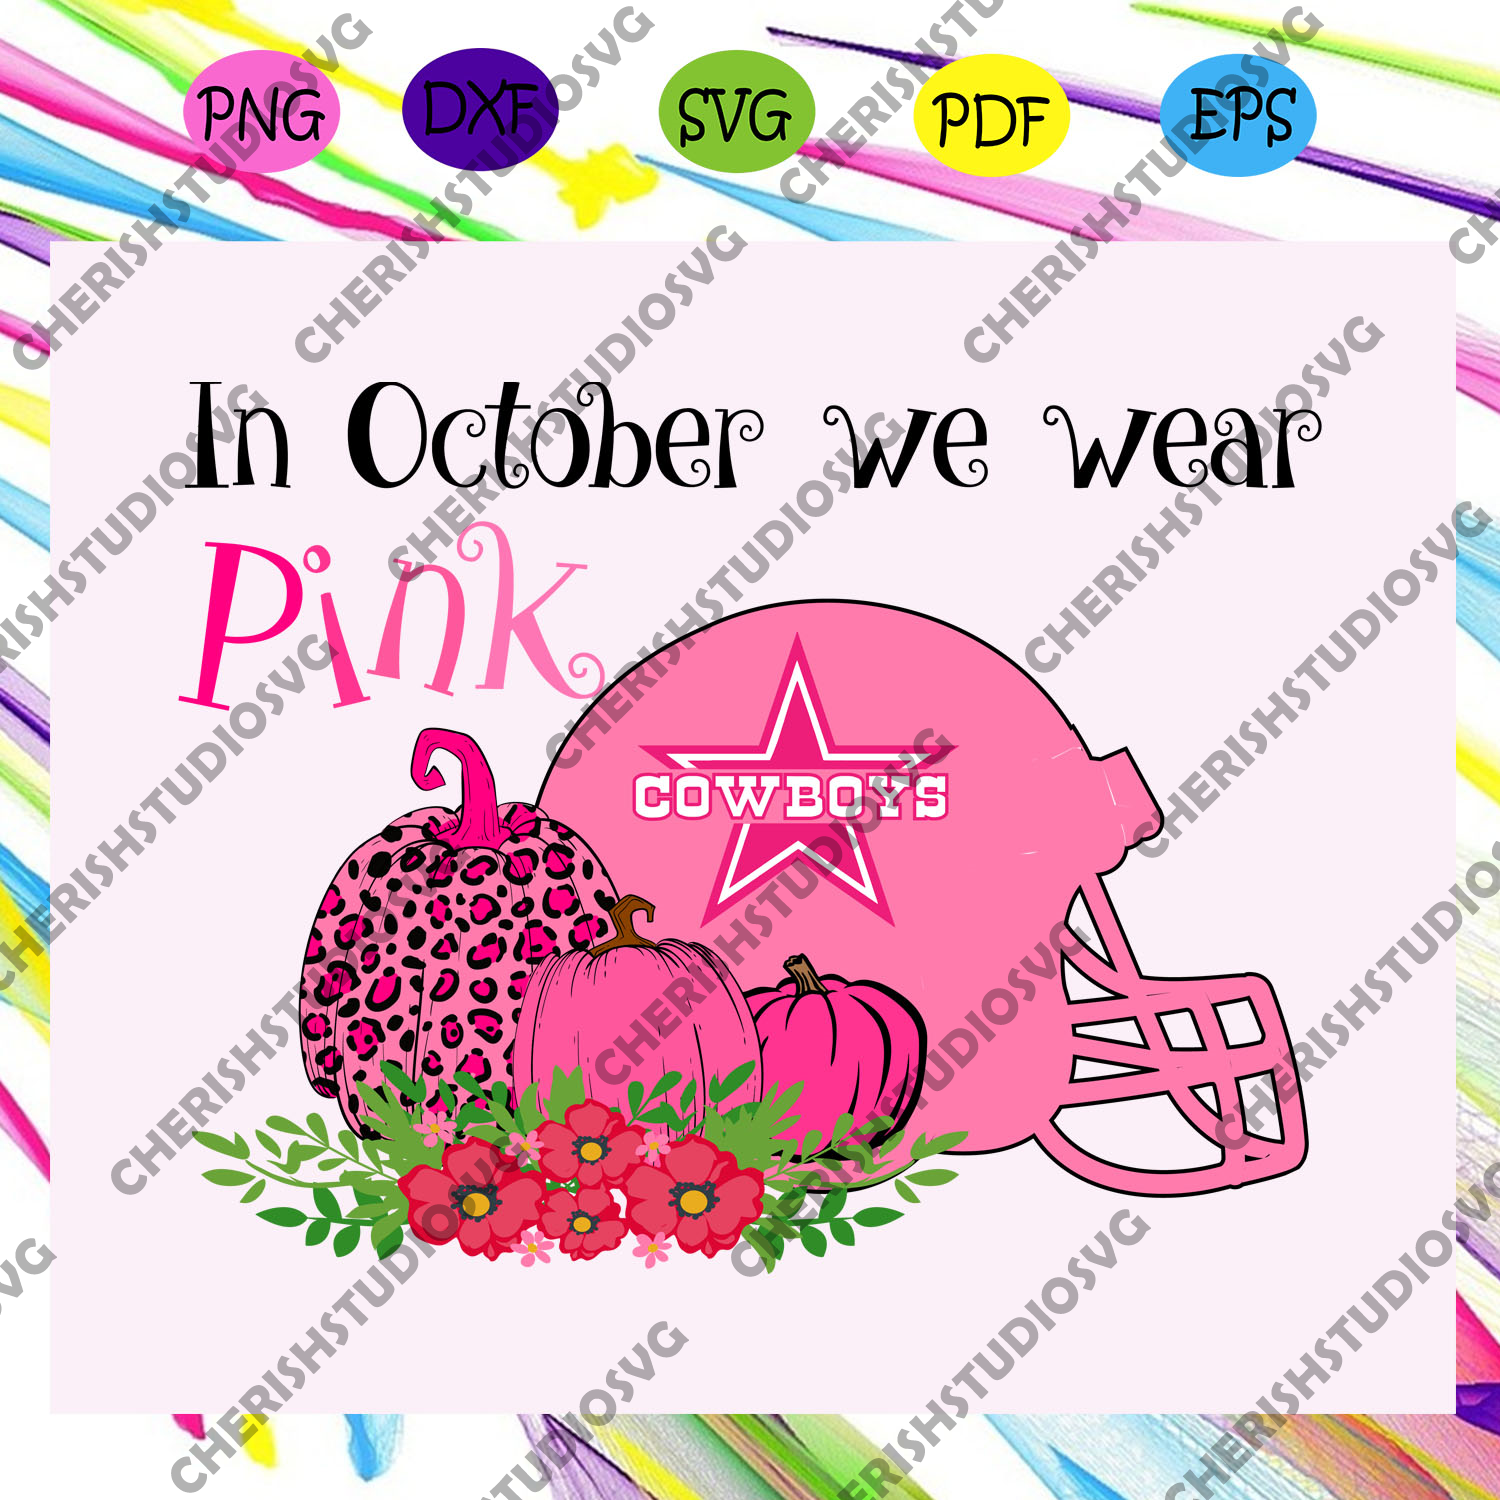 In October we wear pink, cowboys svg, cowboys football, support breast cancer, breast cancer awareness, breast cancer, trending svg For Silhouette, Files For Cricut, SVG, DXF, EPS, PNG Instant Download